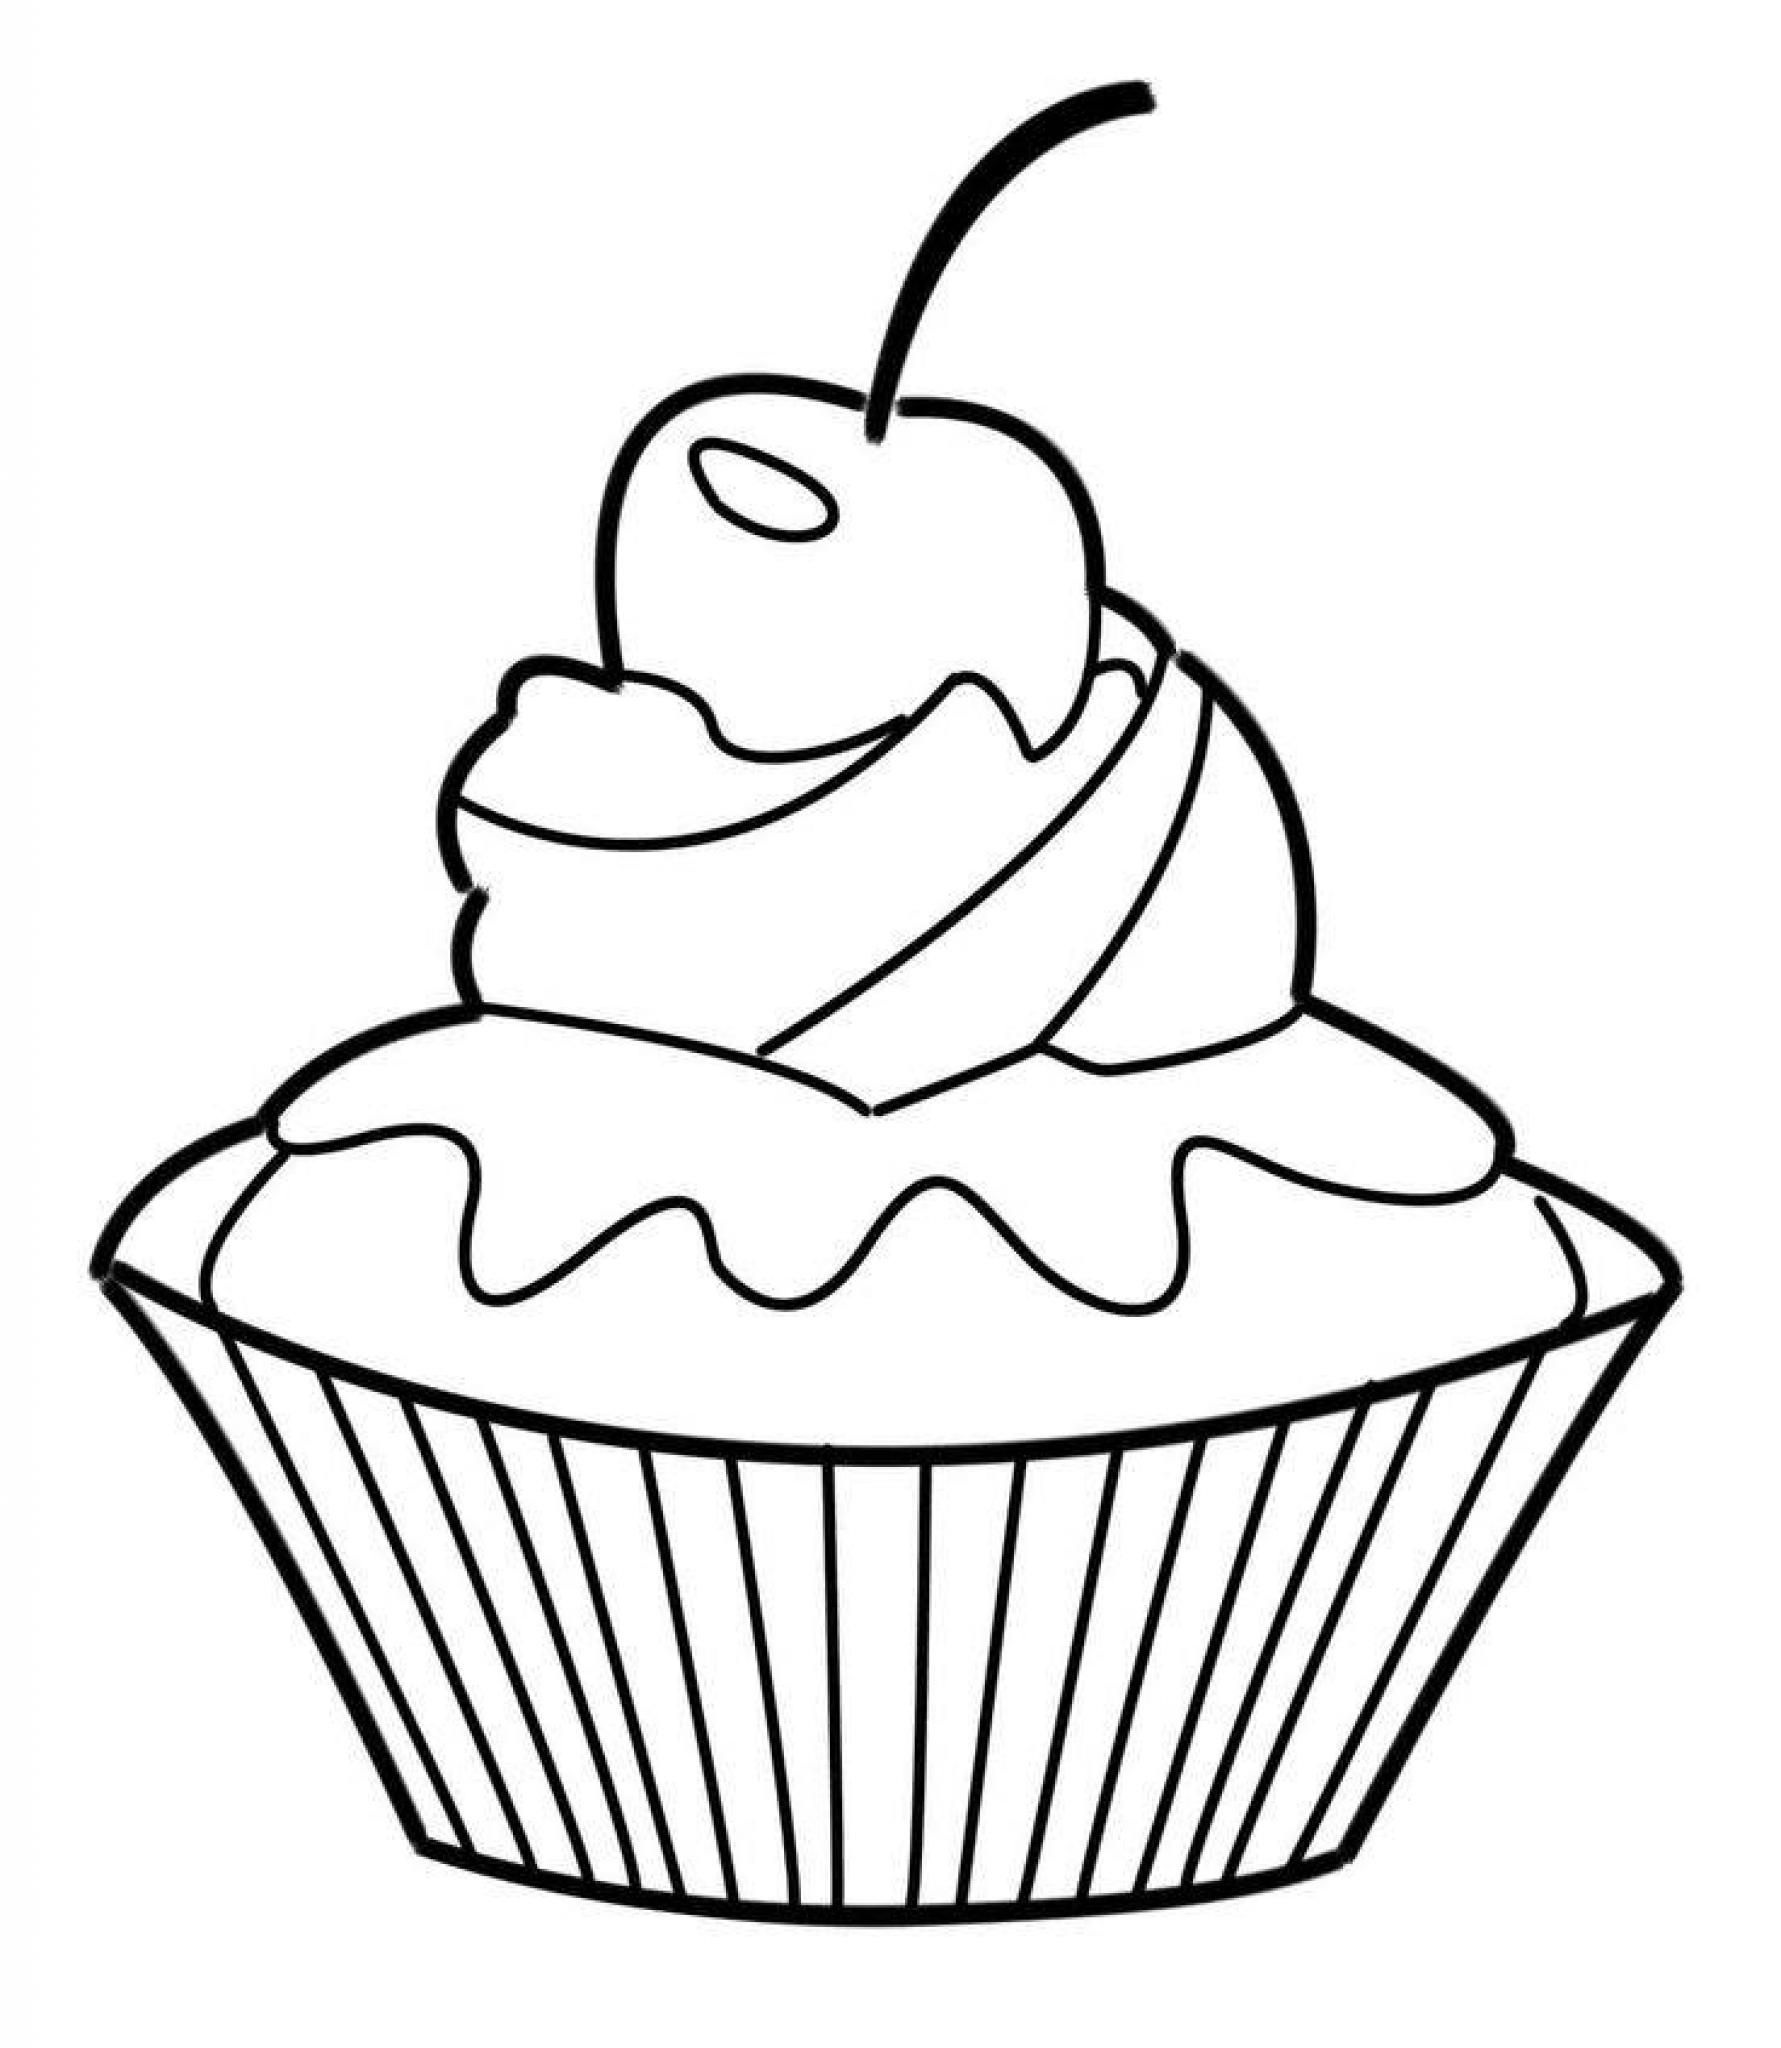 Coloring pages cupcakes - Explore Book Cupcakes Cupcake Cupcake And More